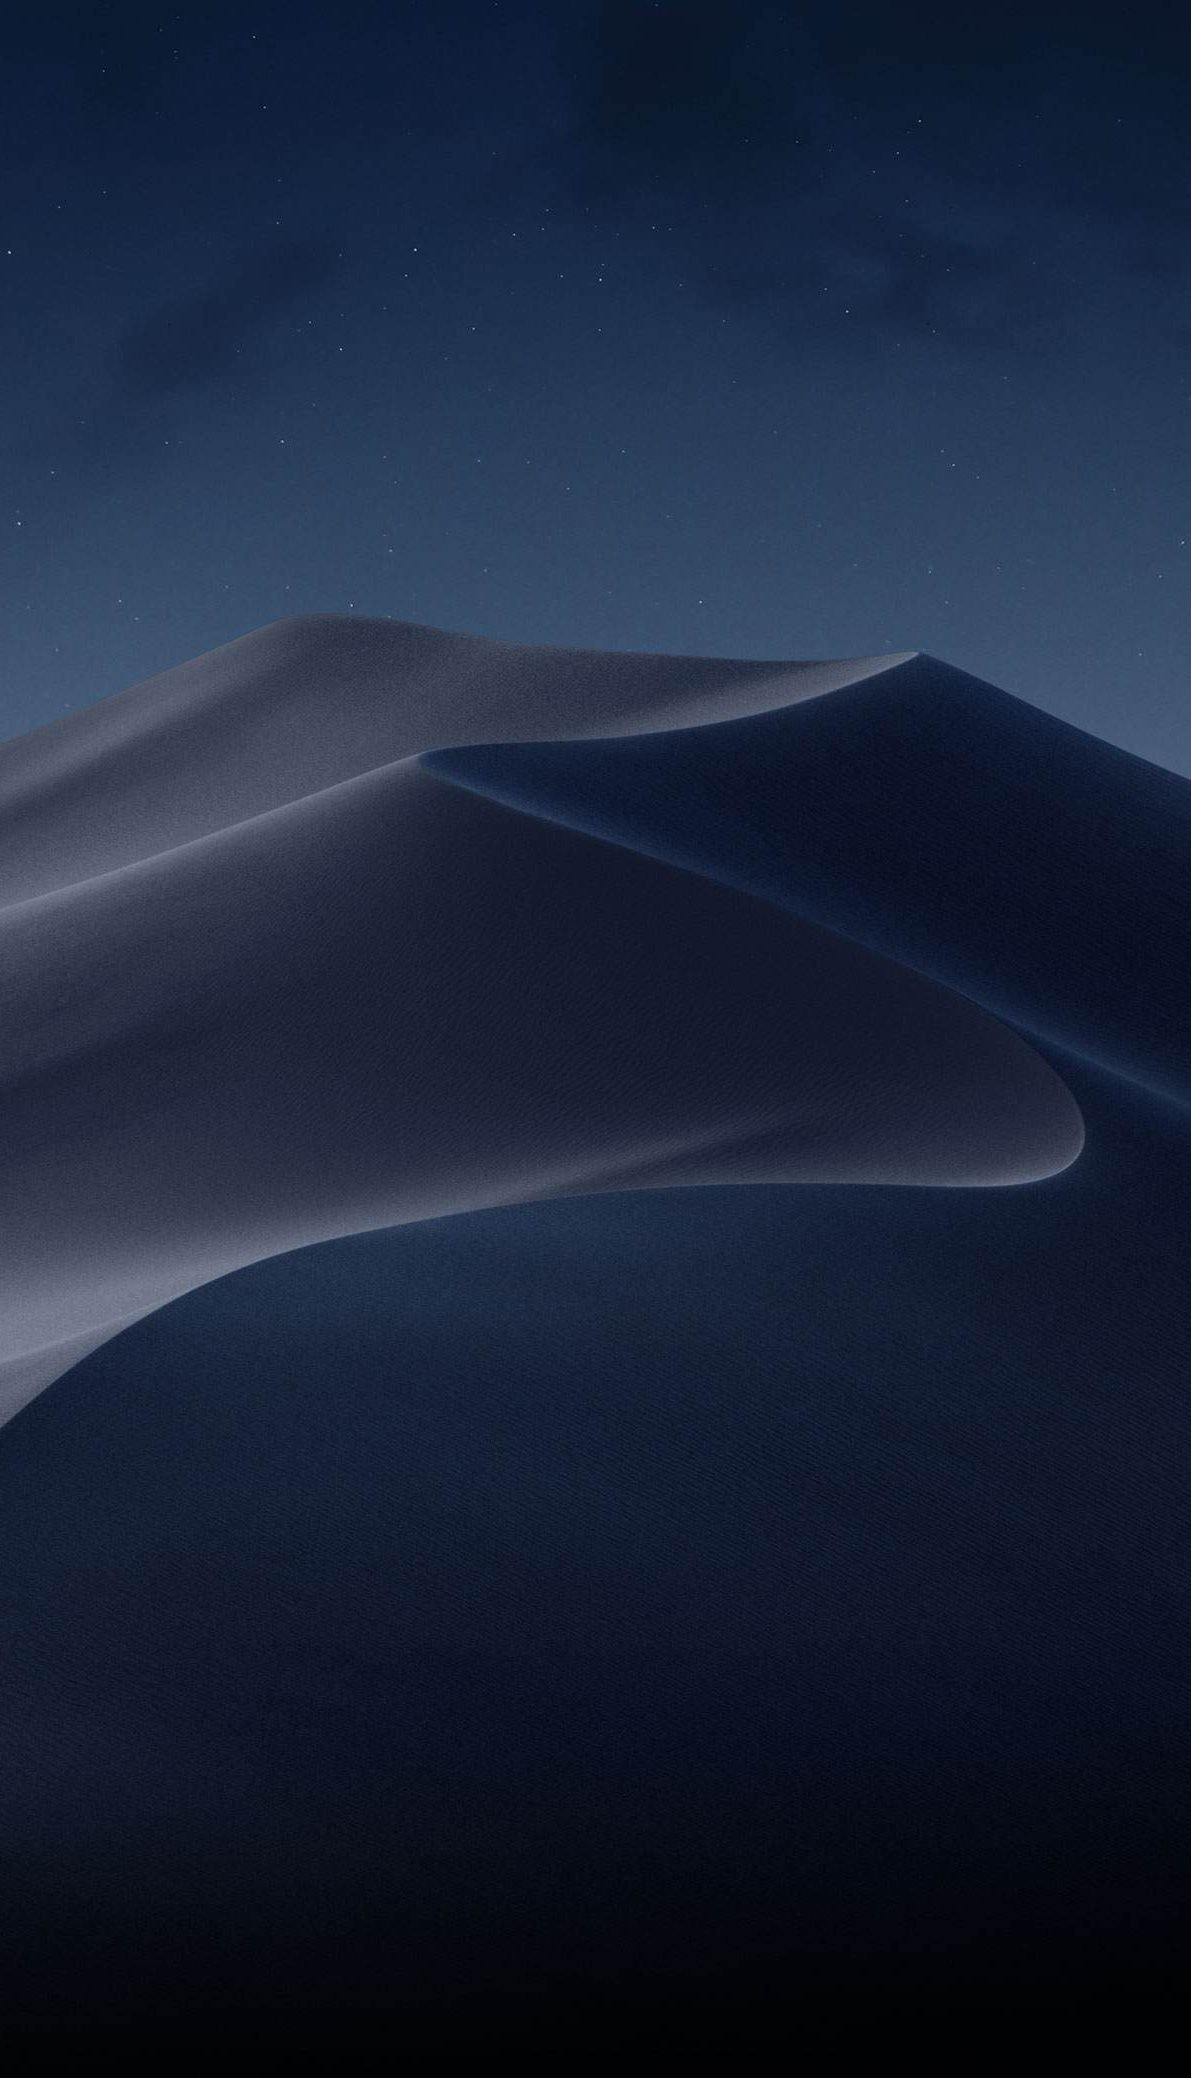 Download macOS Mojave Official Wallpaper 2